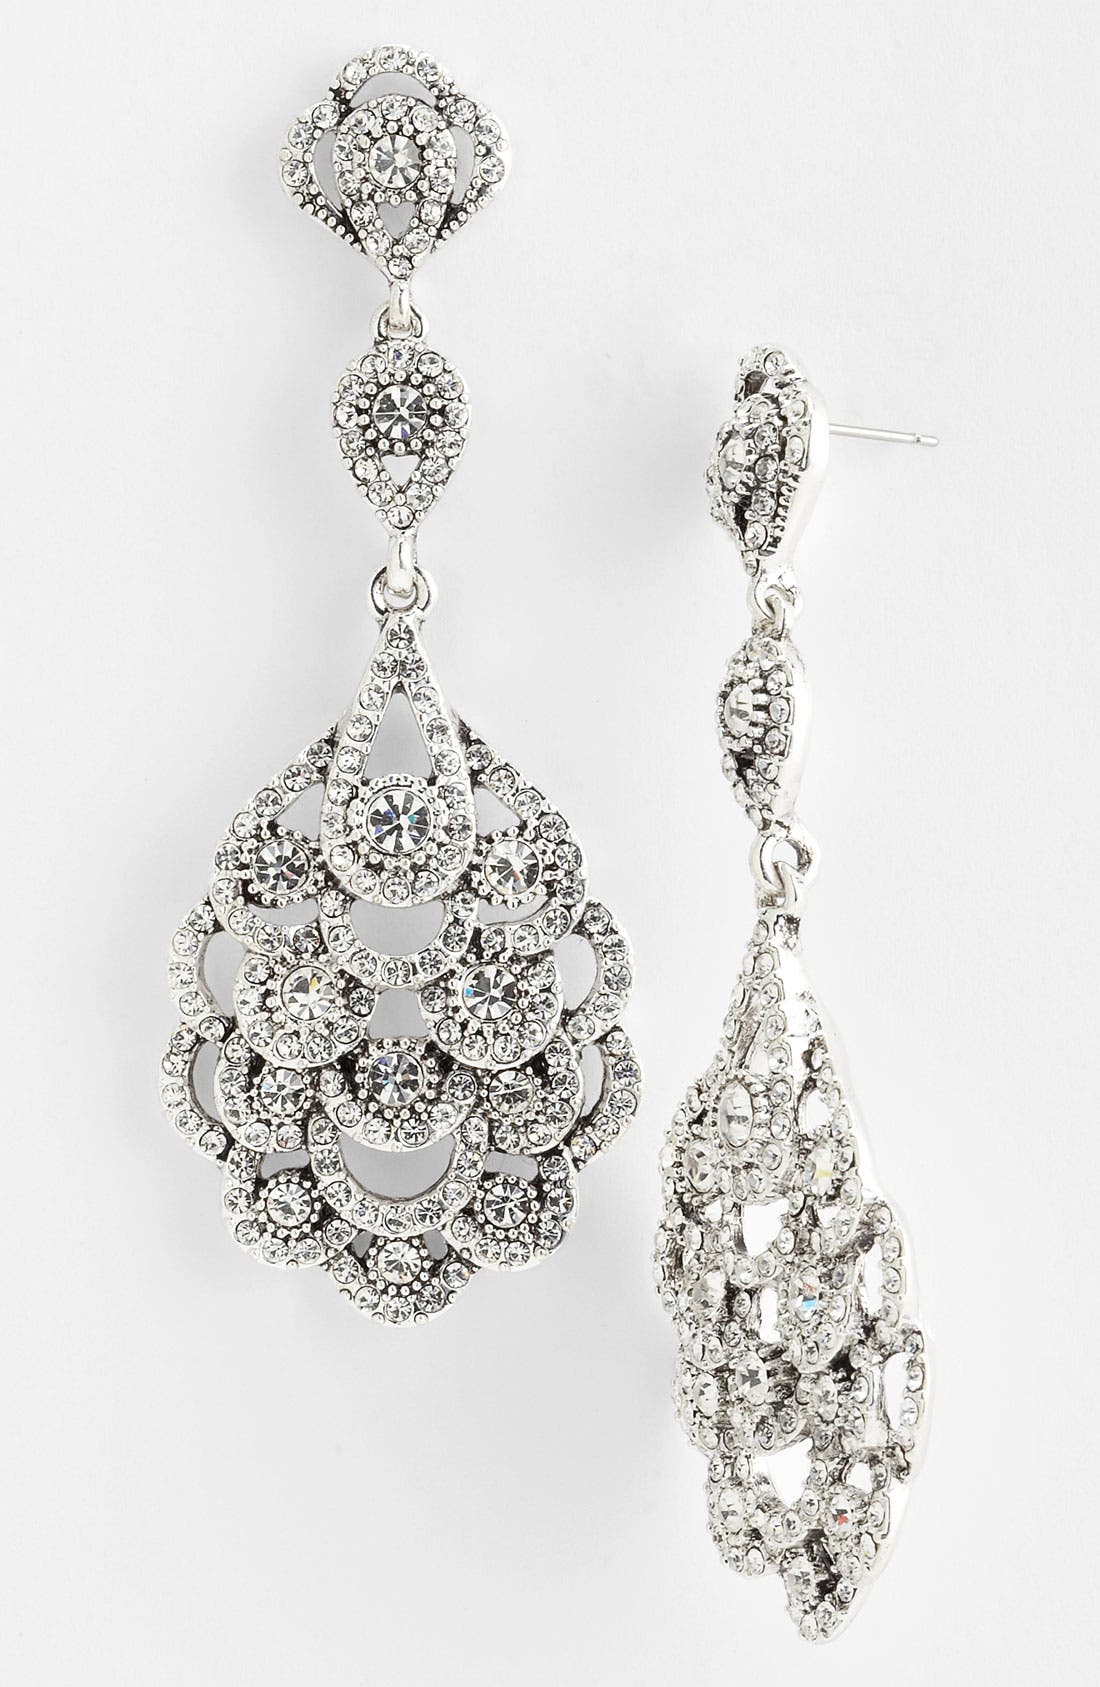 'Eiffel' Statement Drop Earrings,                         Main,                         color, ANTIQUE SILVER/ CLEAR CRYSTAL